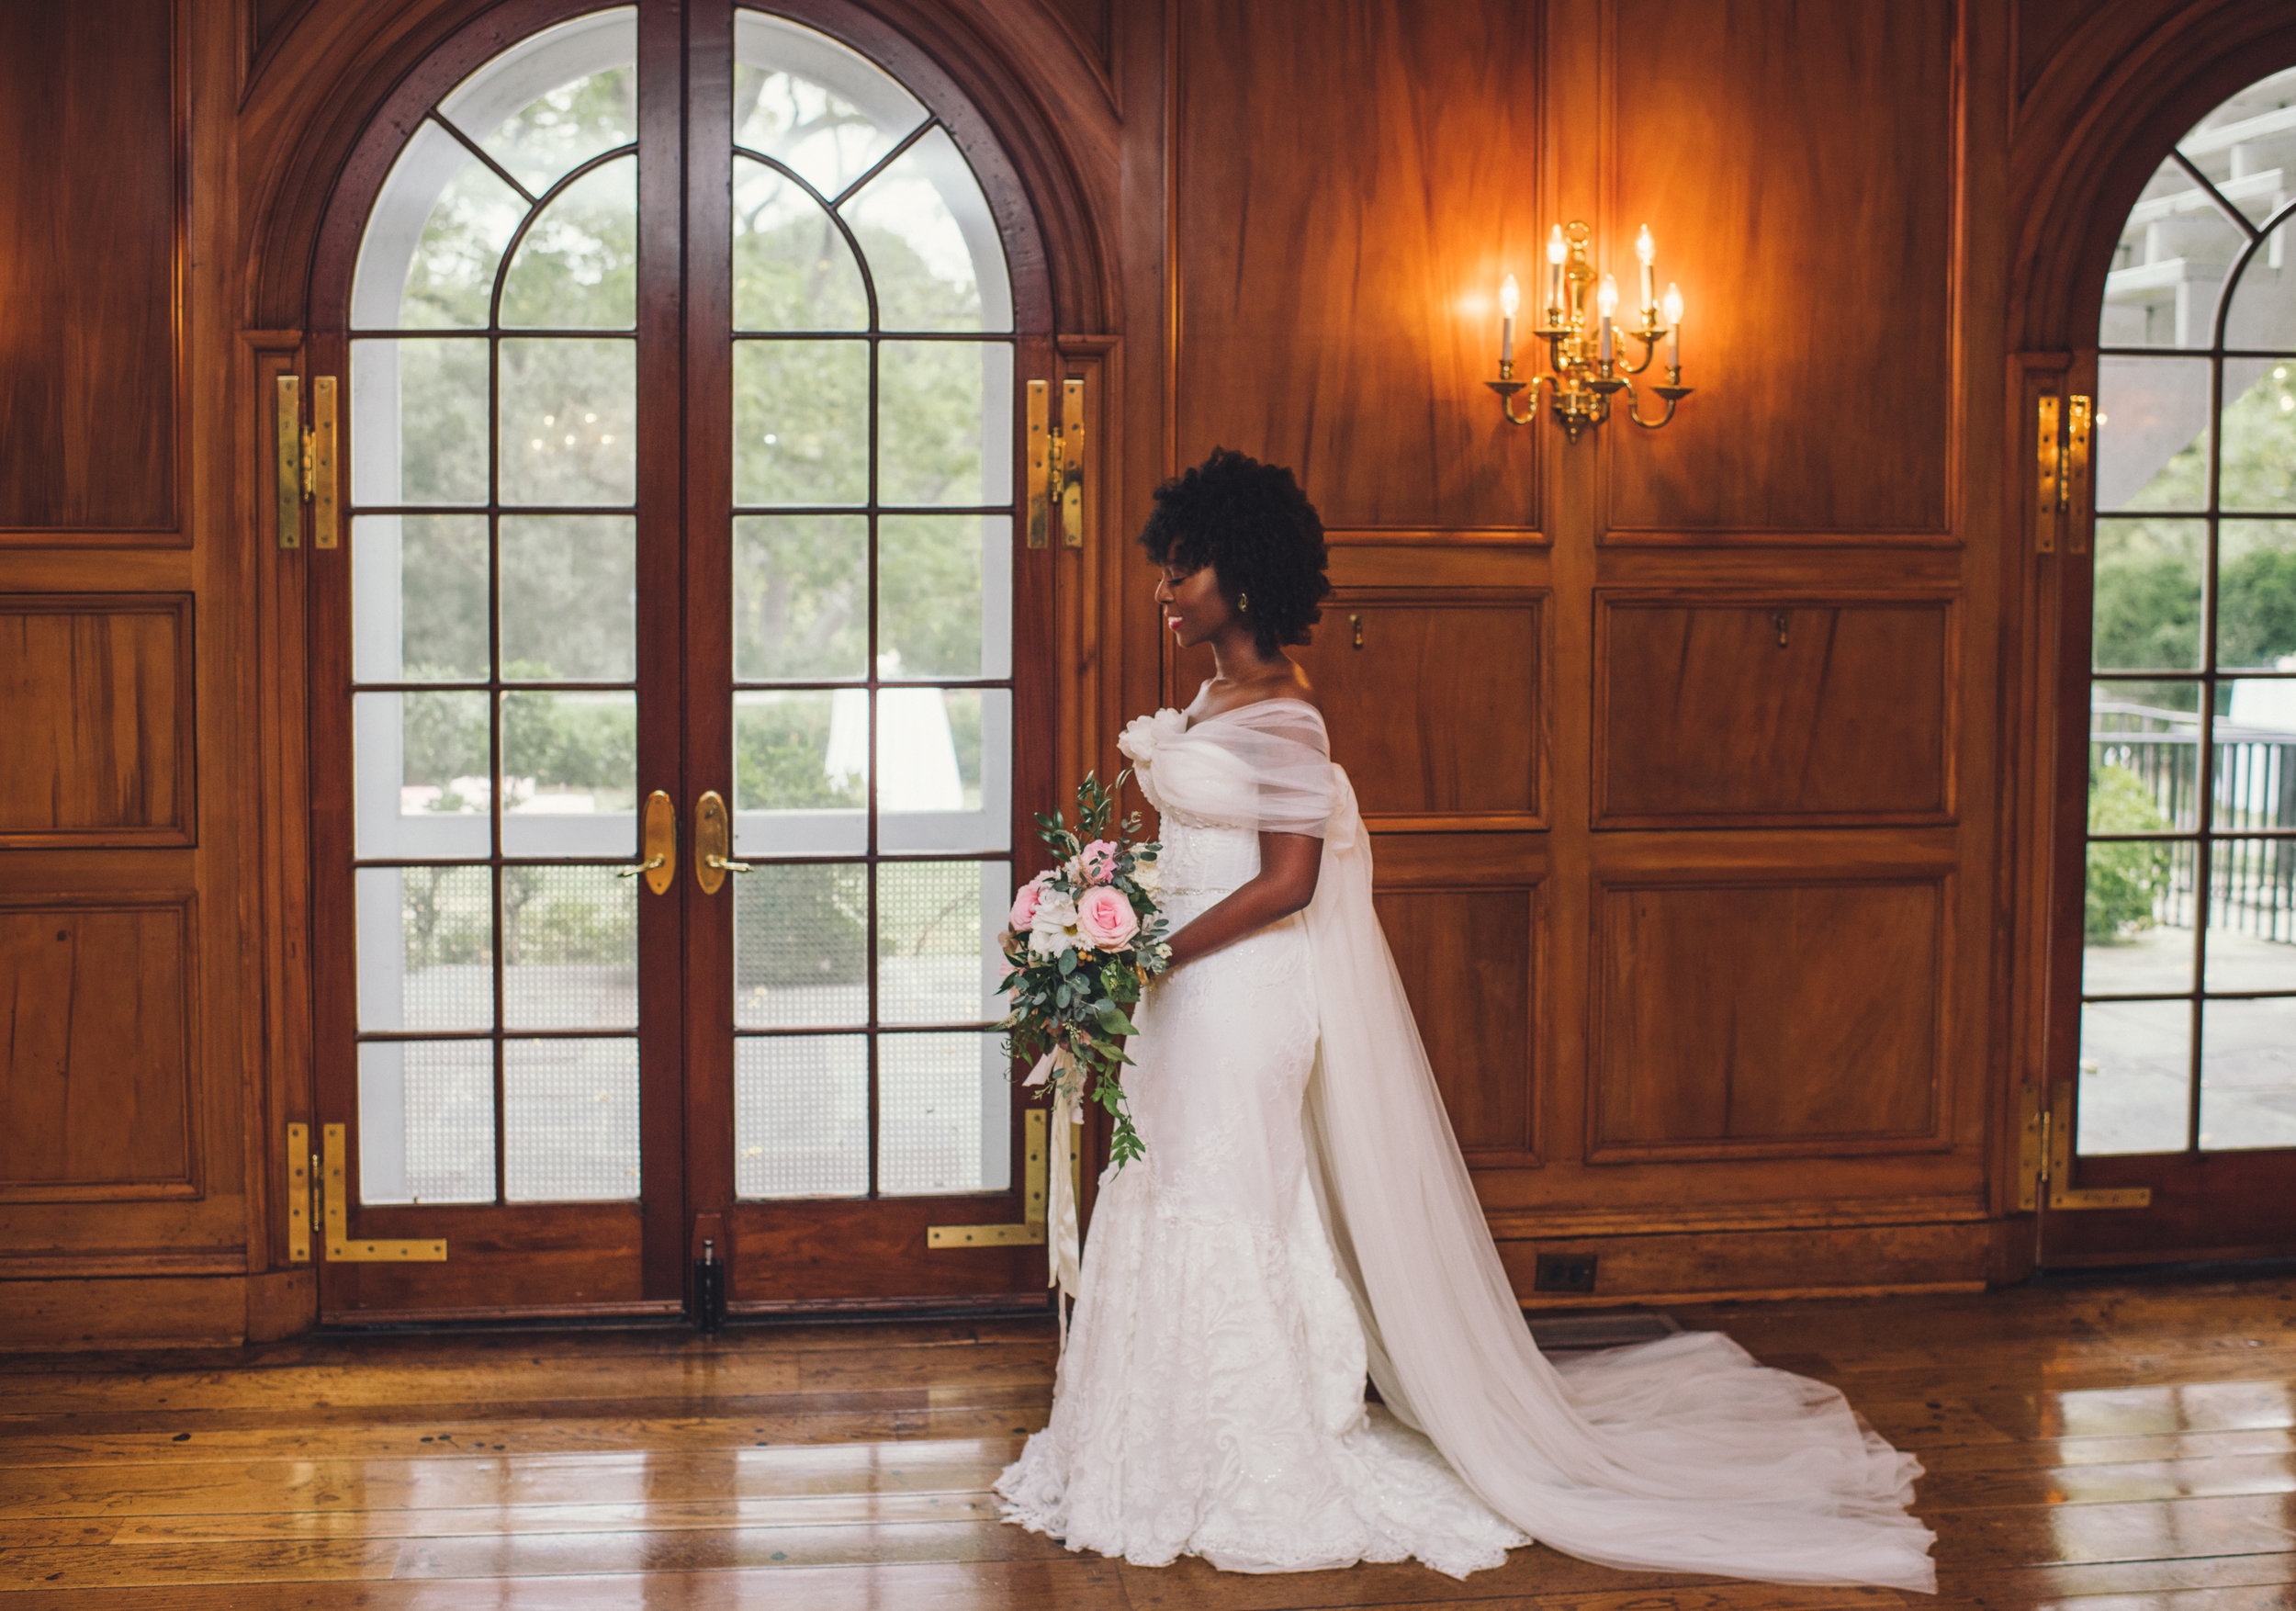 GLENVIEW MANSION WEDDING - INTIMATE WEDDING PHOTOGRAPHER - TWOTWENTY by CHI-CHI AGBIM-162.jpg